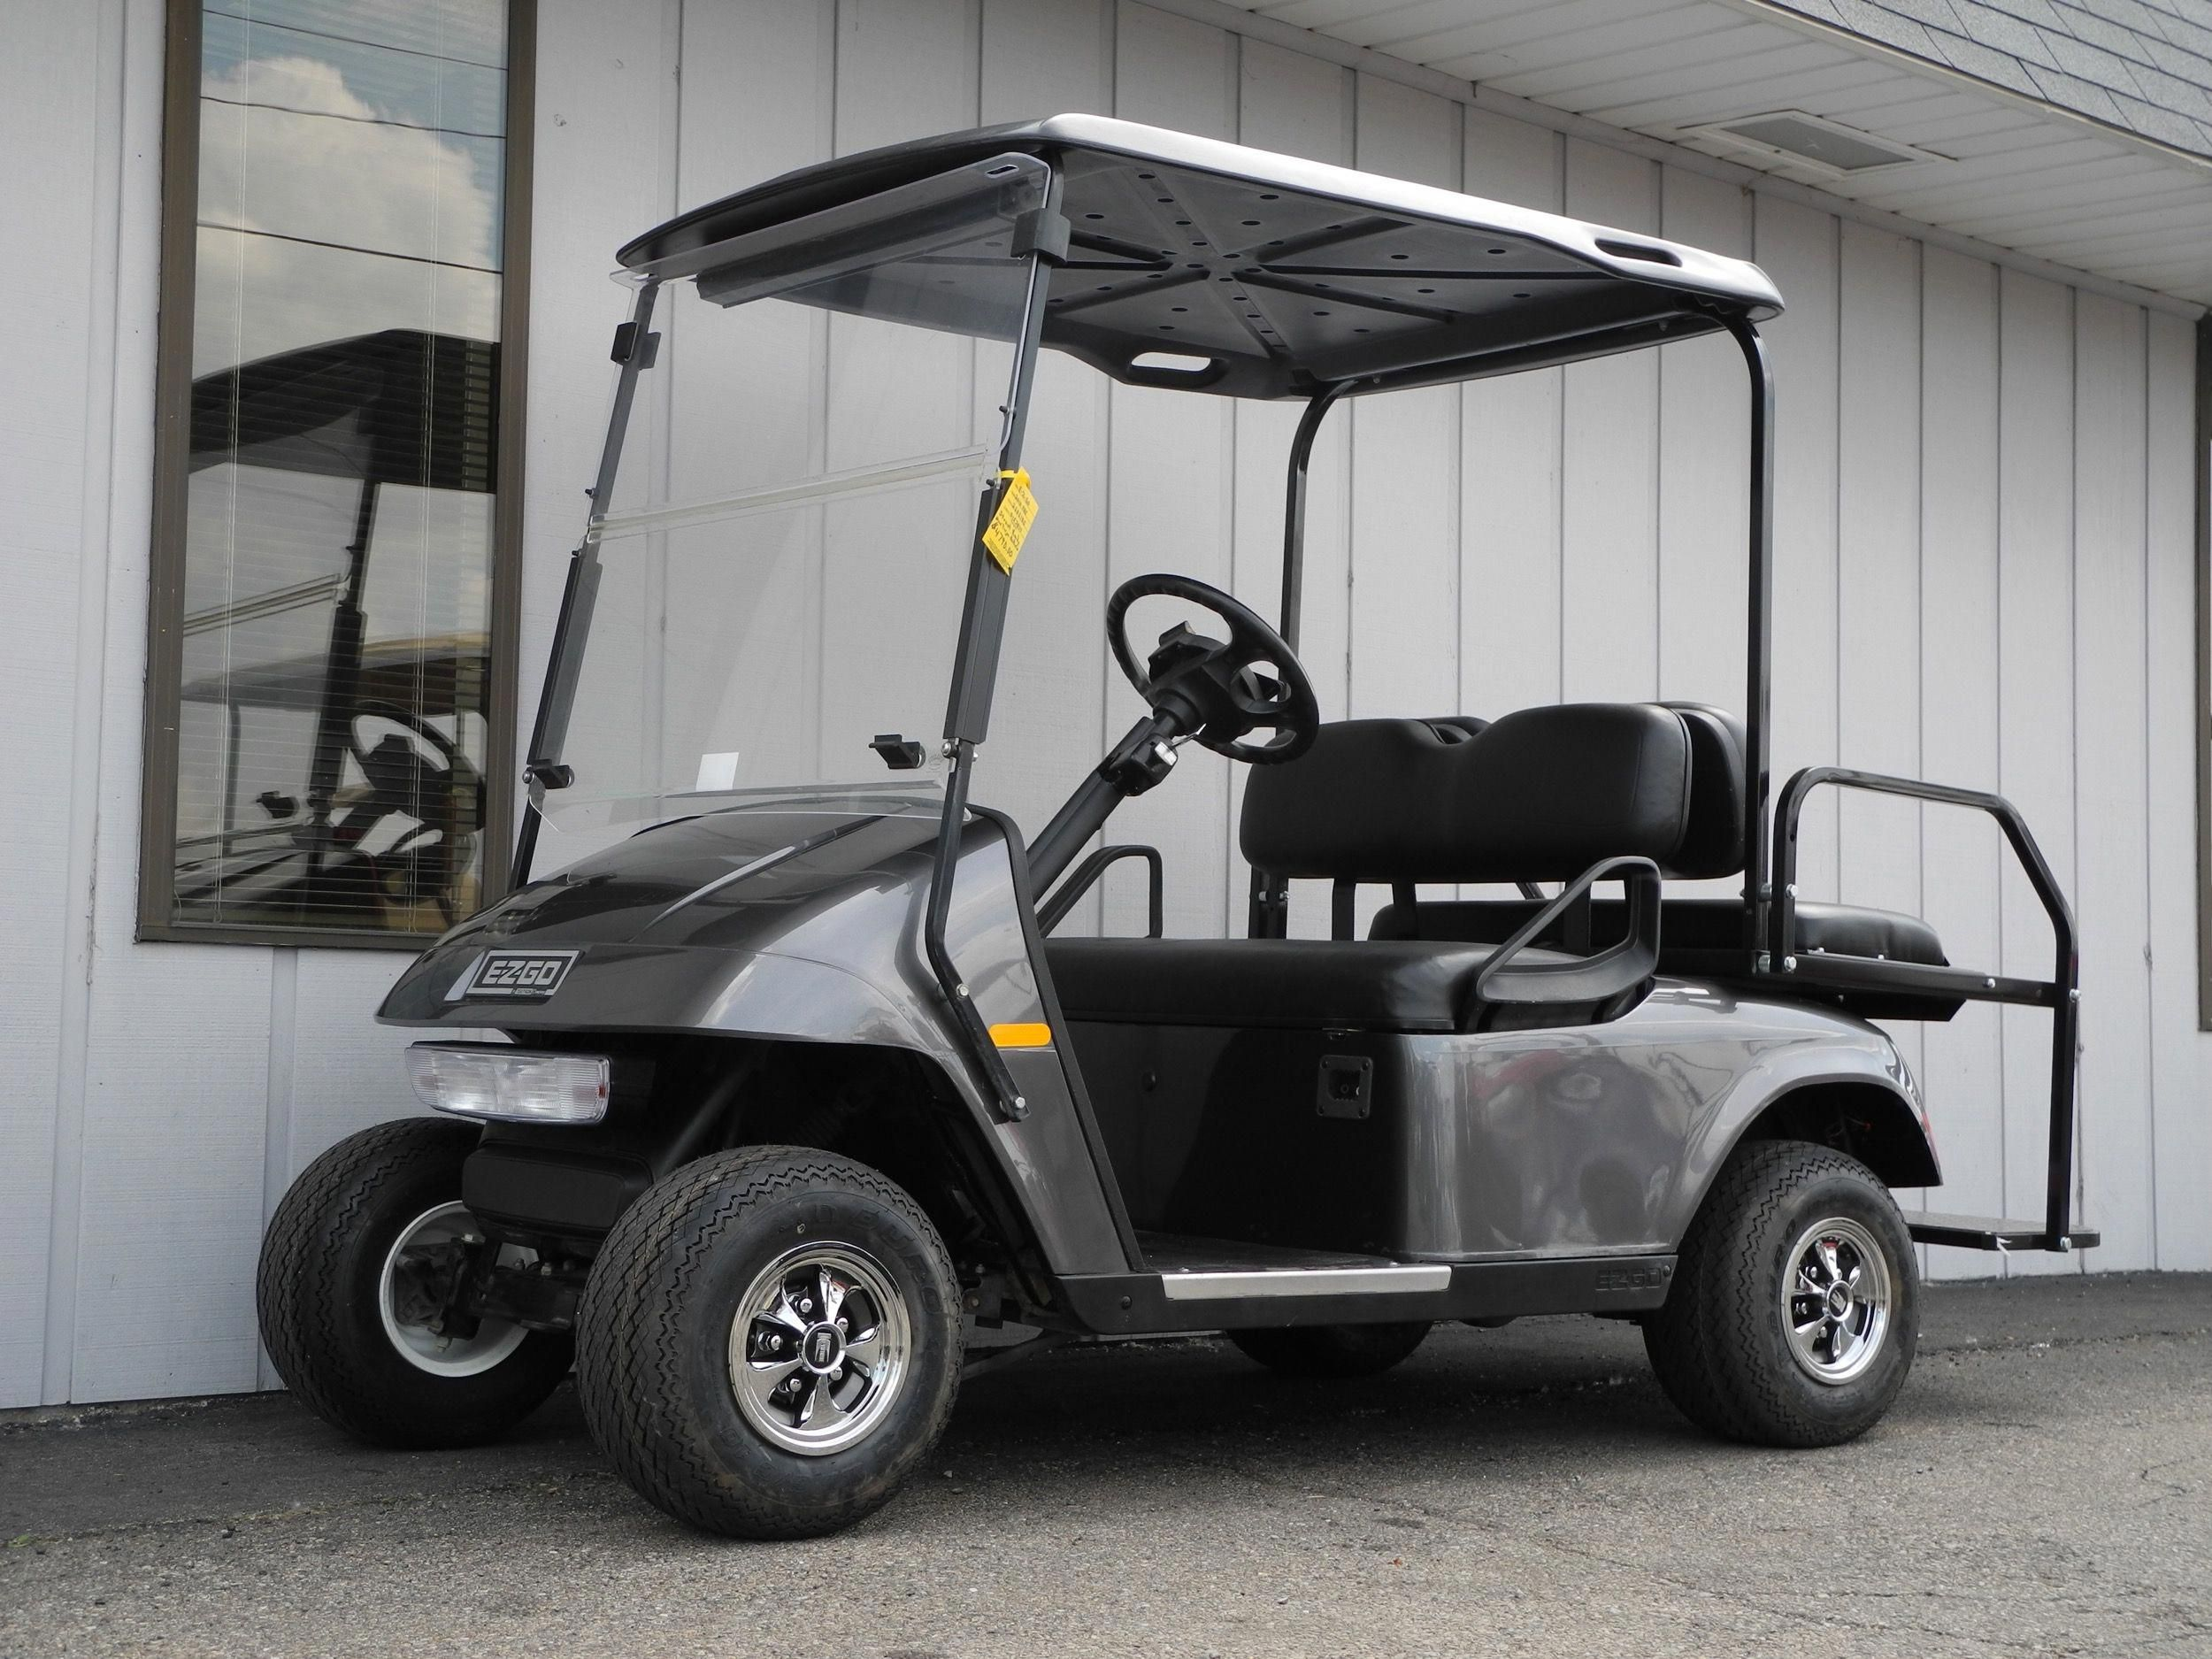 This 2010 E Z Go Pds Electric Golf Car Is Street Ready With Premium Lights Folding Windshield Rear View Mirror Standard With Images Car Golf Car Street Legal Golf Cart